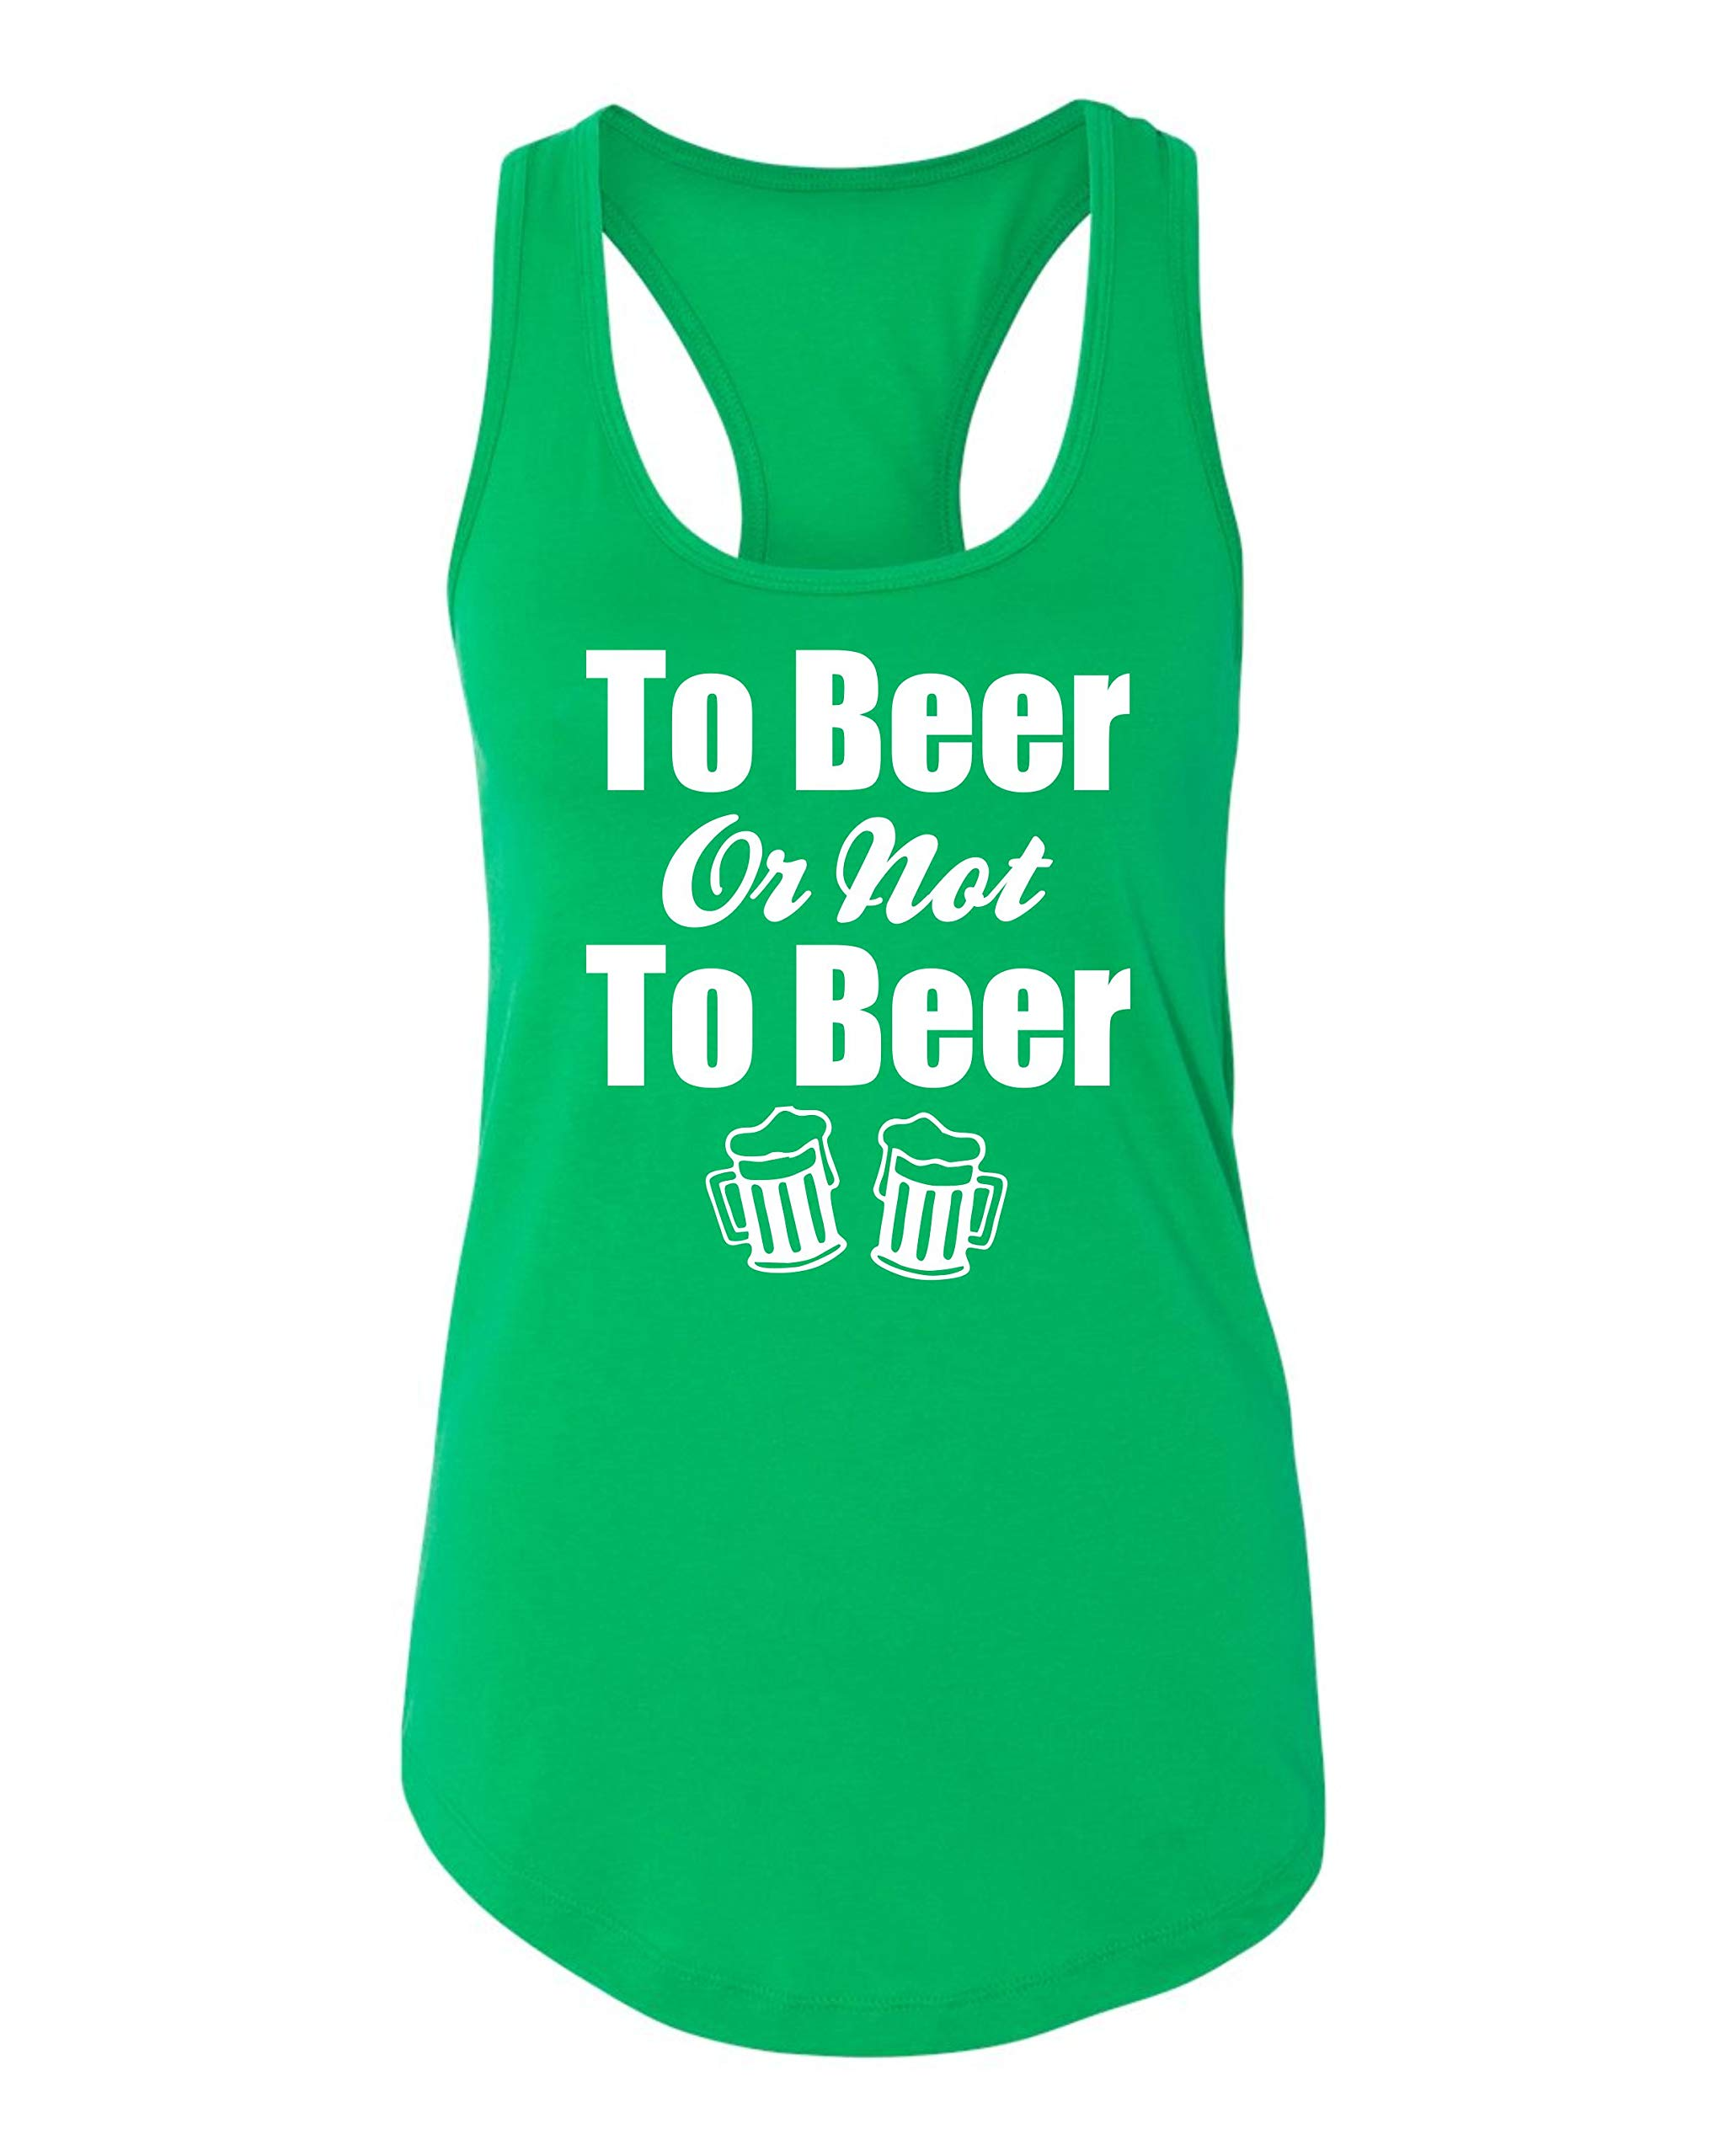 To Beer Or Not To Beer Funny St Patrick S Day Irish Drinking Tank Top Green New 6442 Shirt